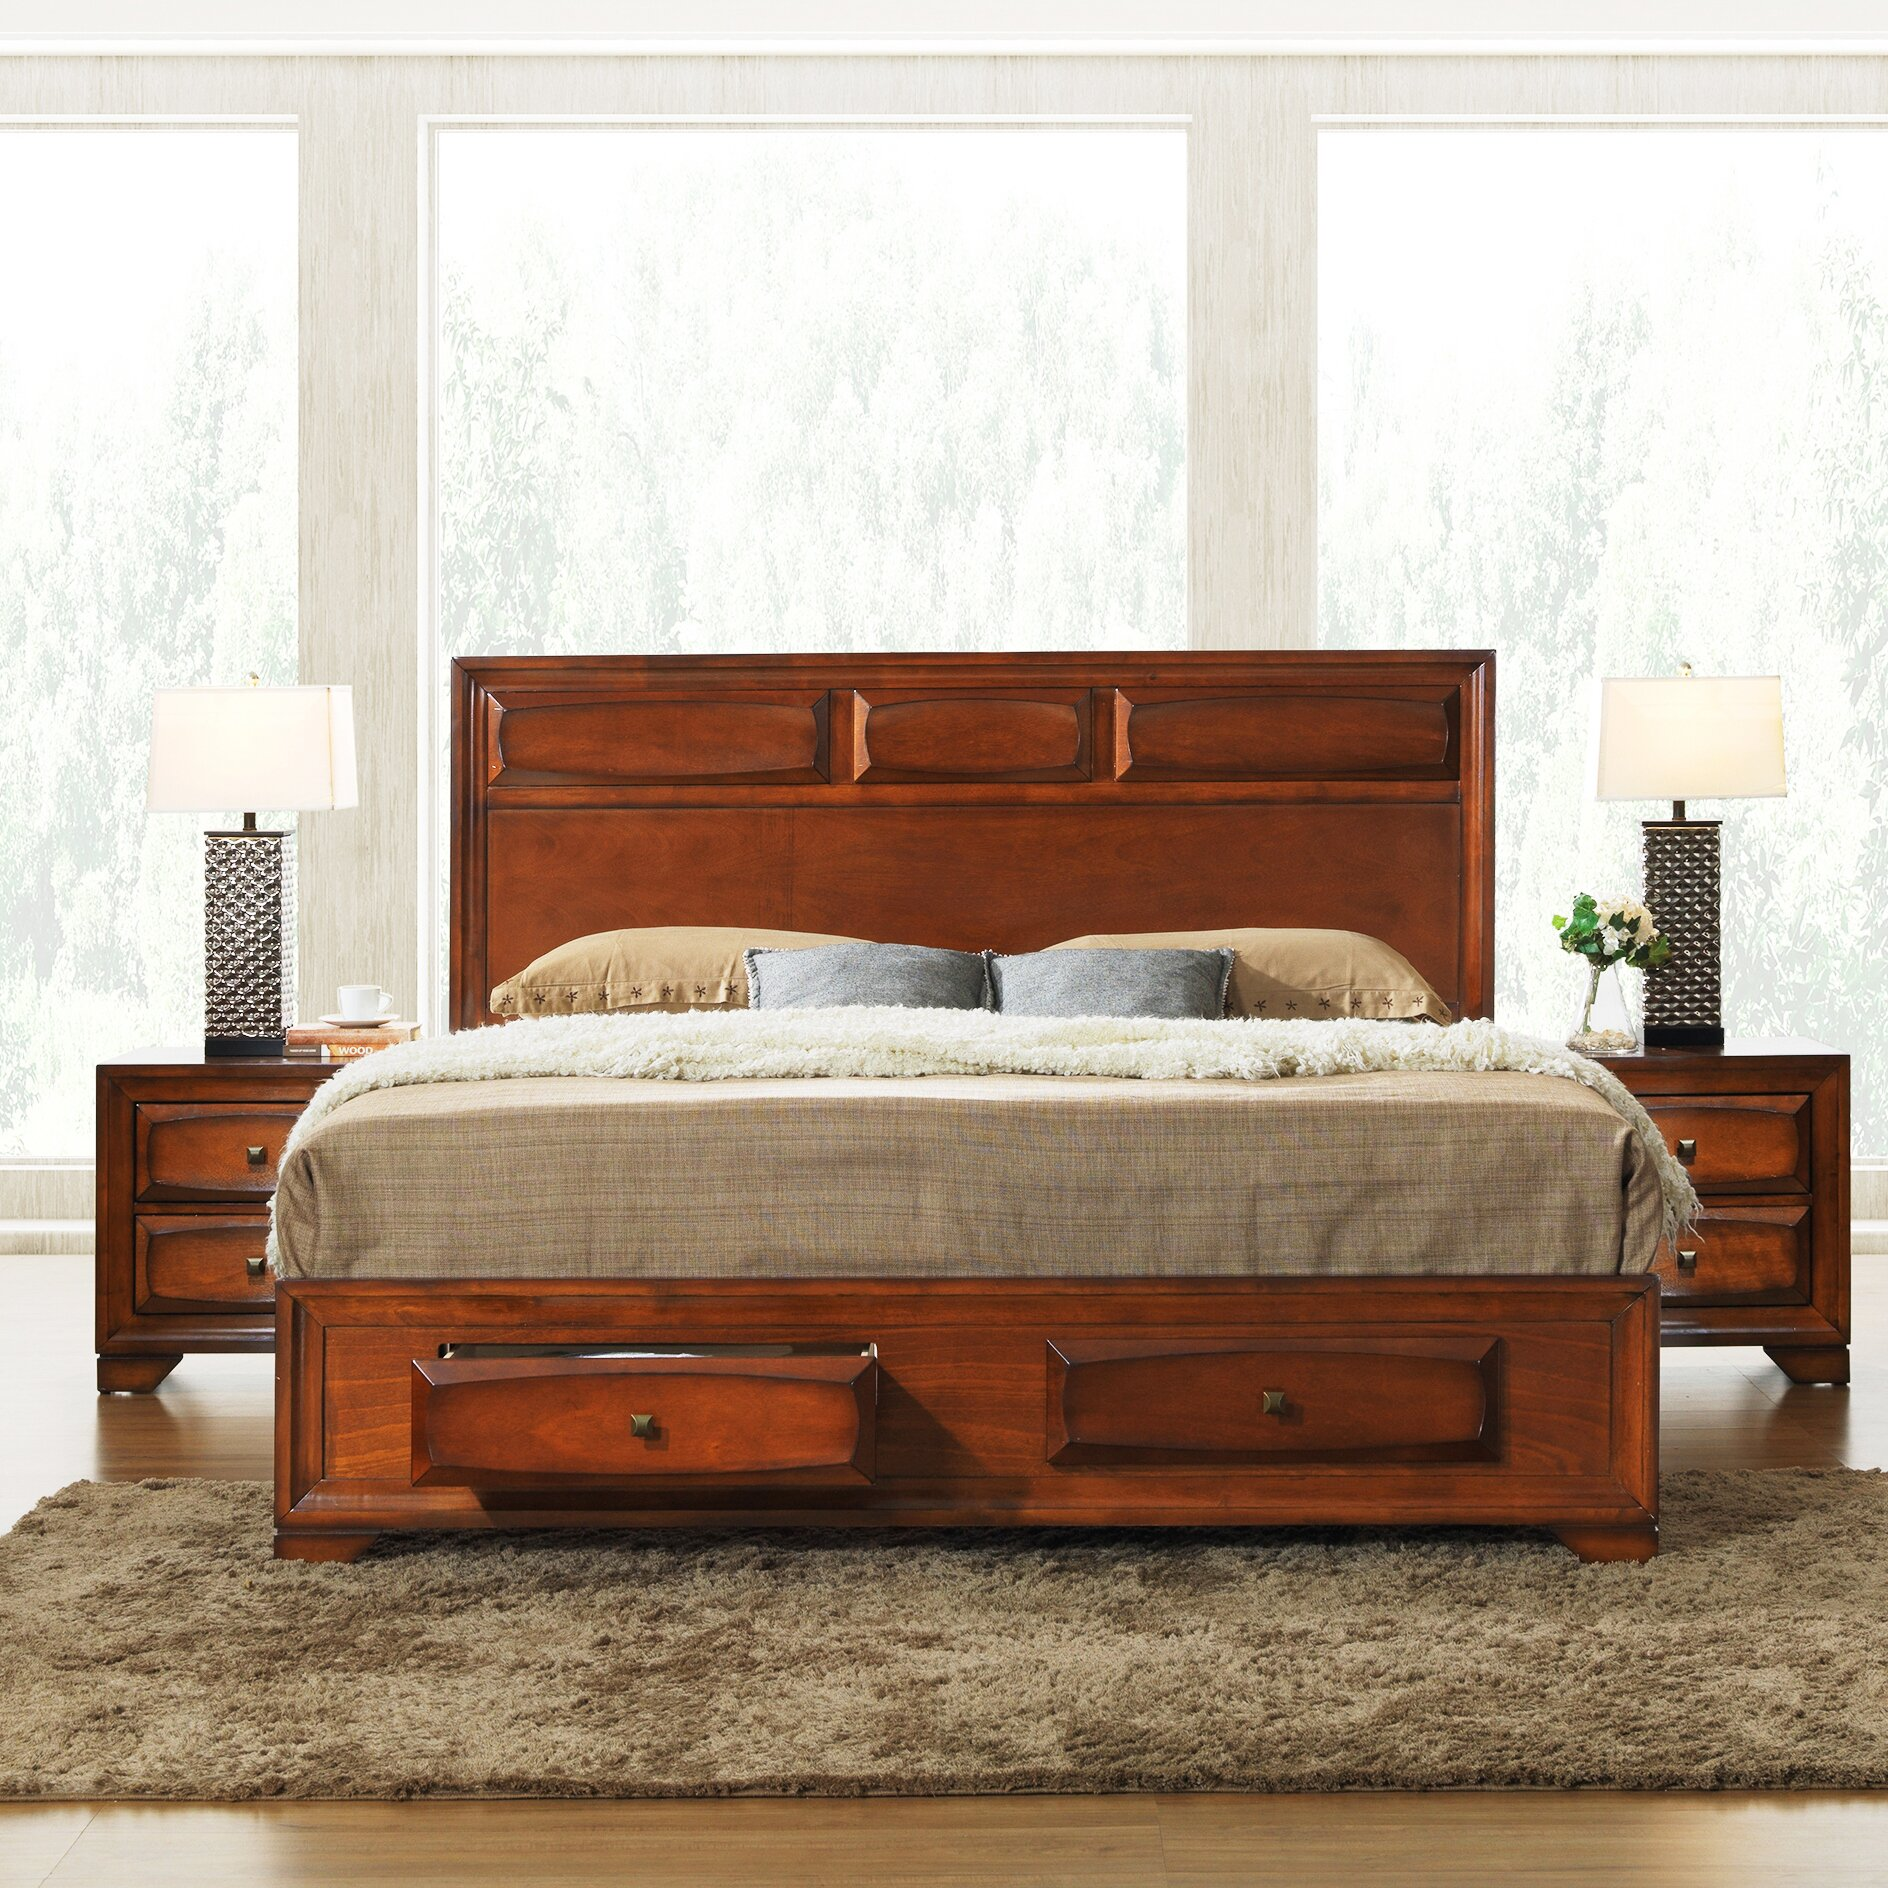 Oak Furniture Land Bedroom Furniture Bedroom Furniture Oak Land Best Bedroom Ideas 2017